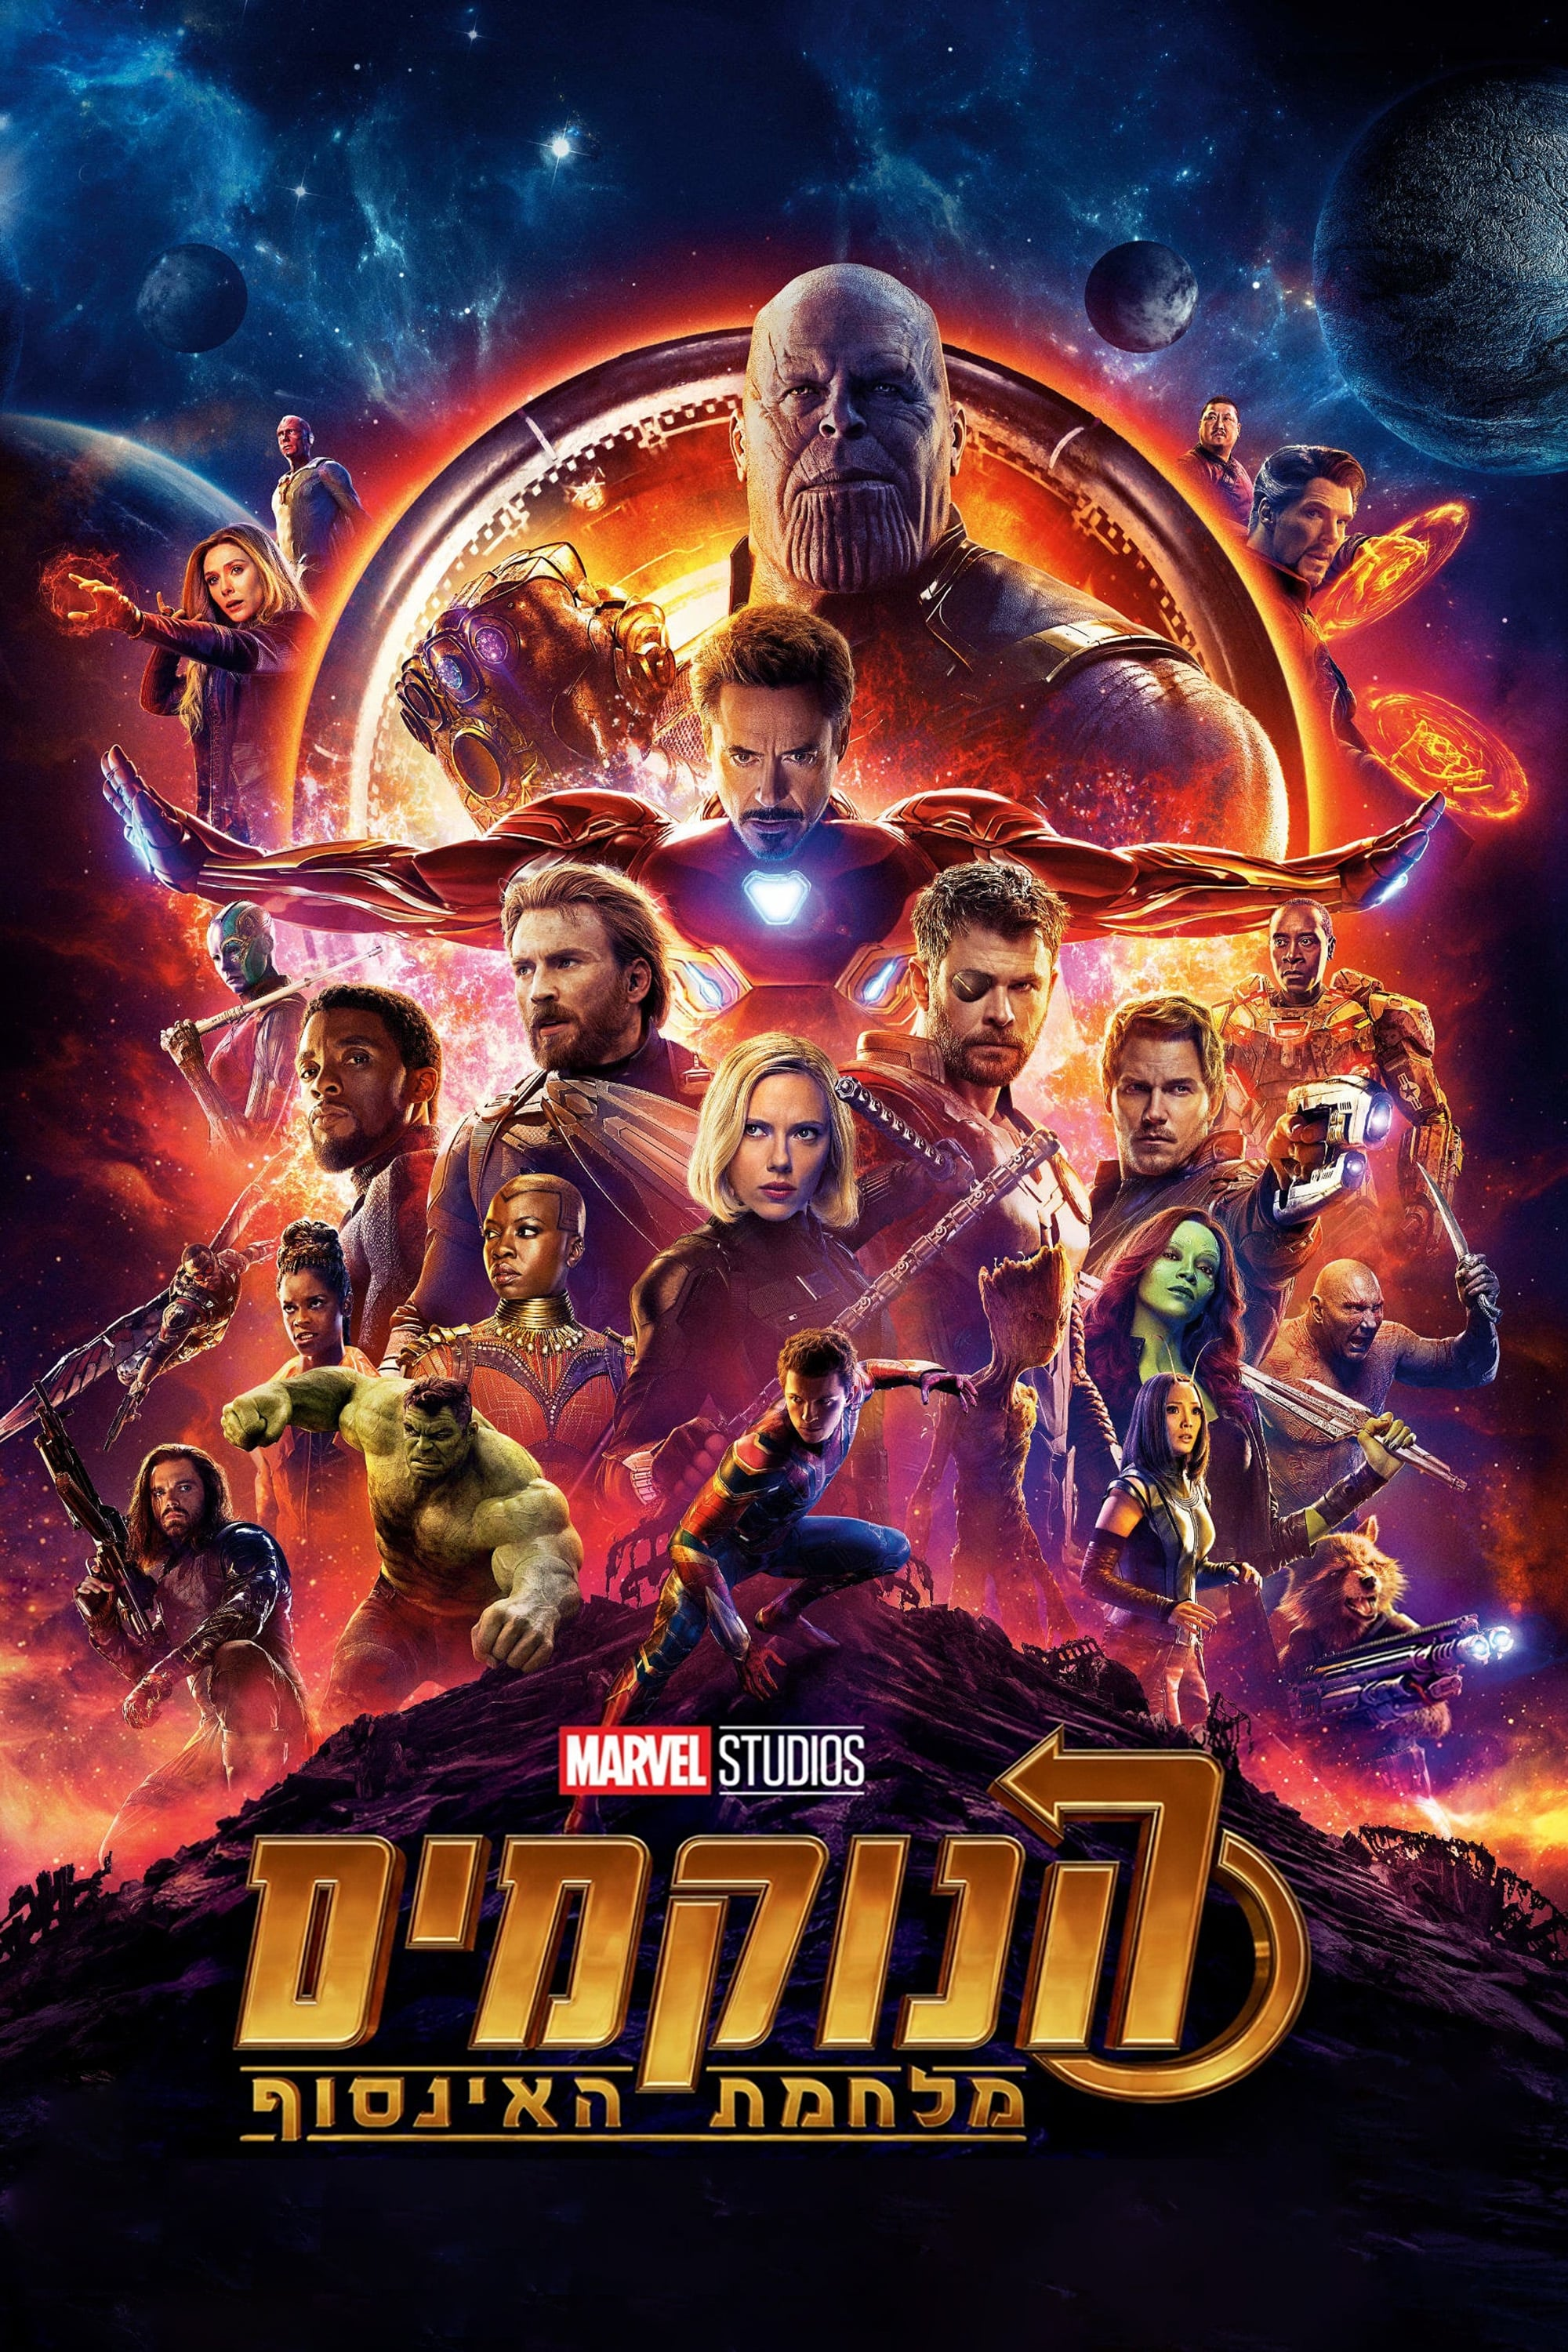 Avengers Infinity War 2018 Posters The Movie